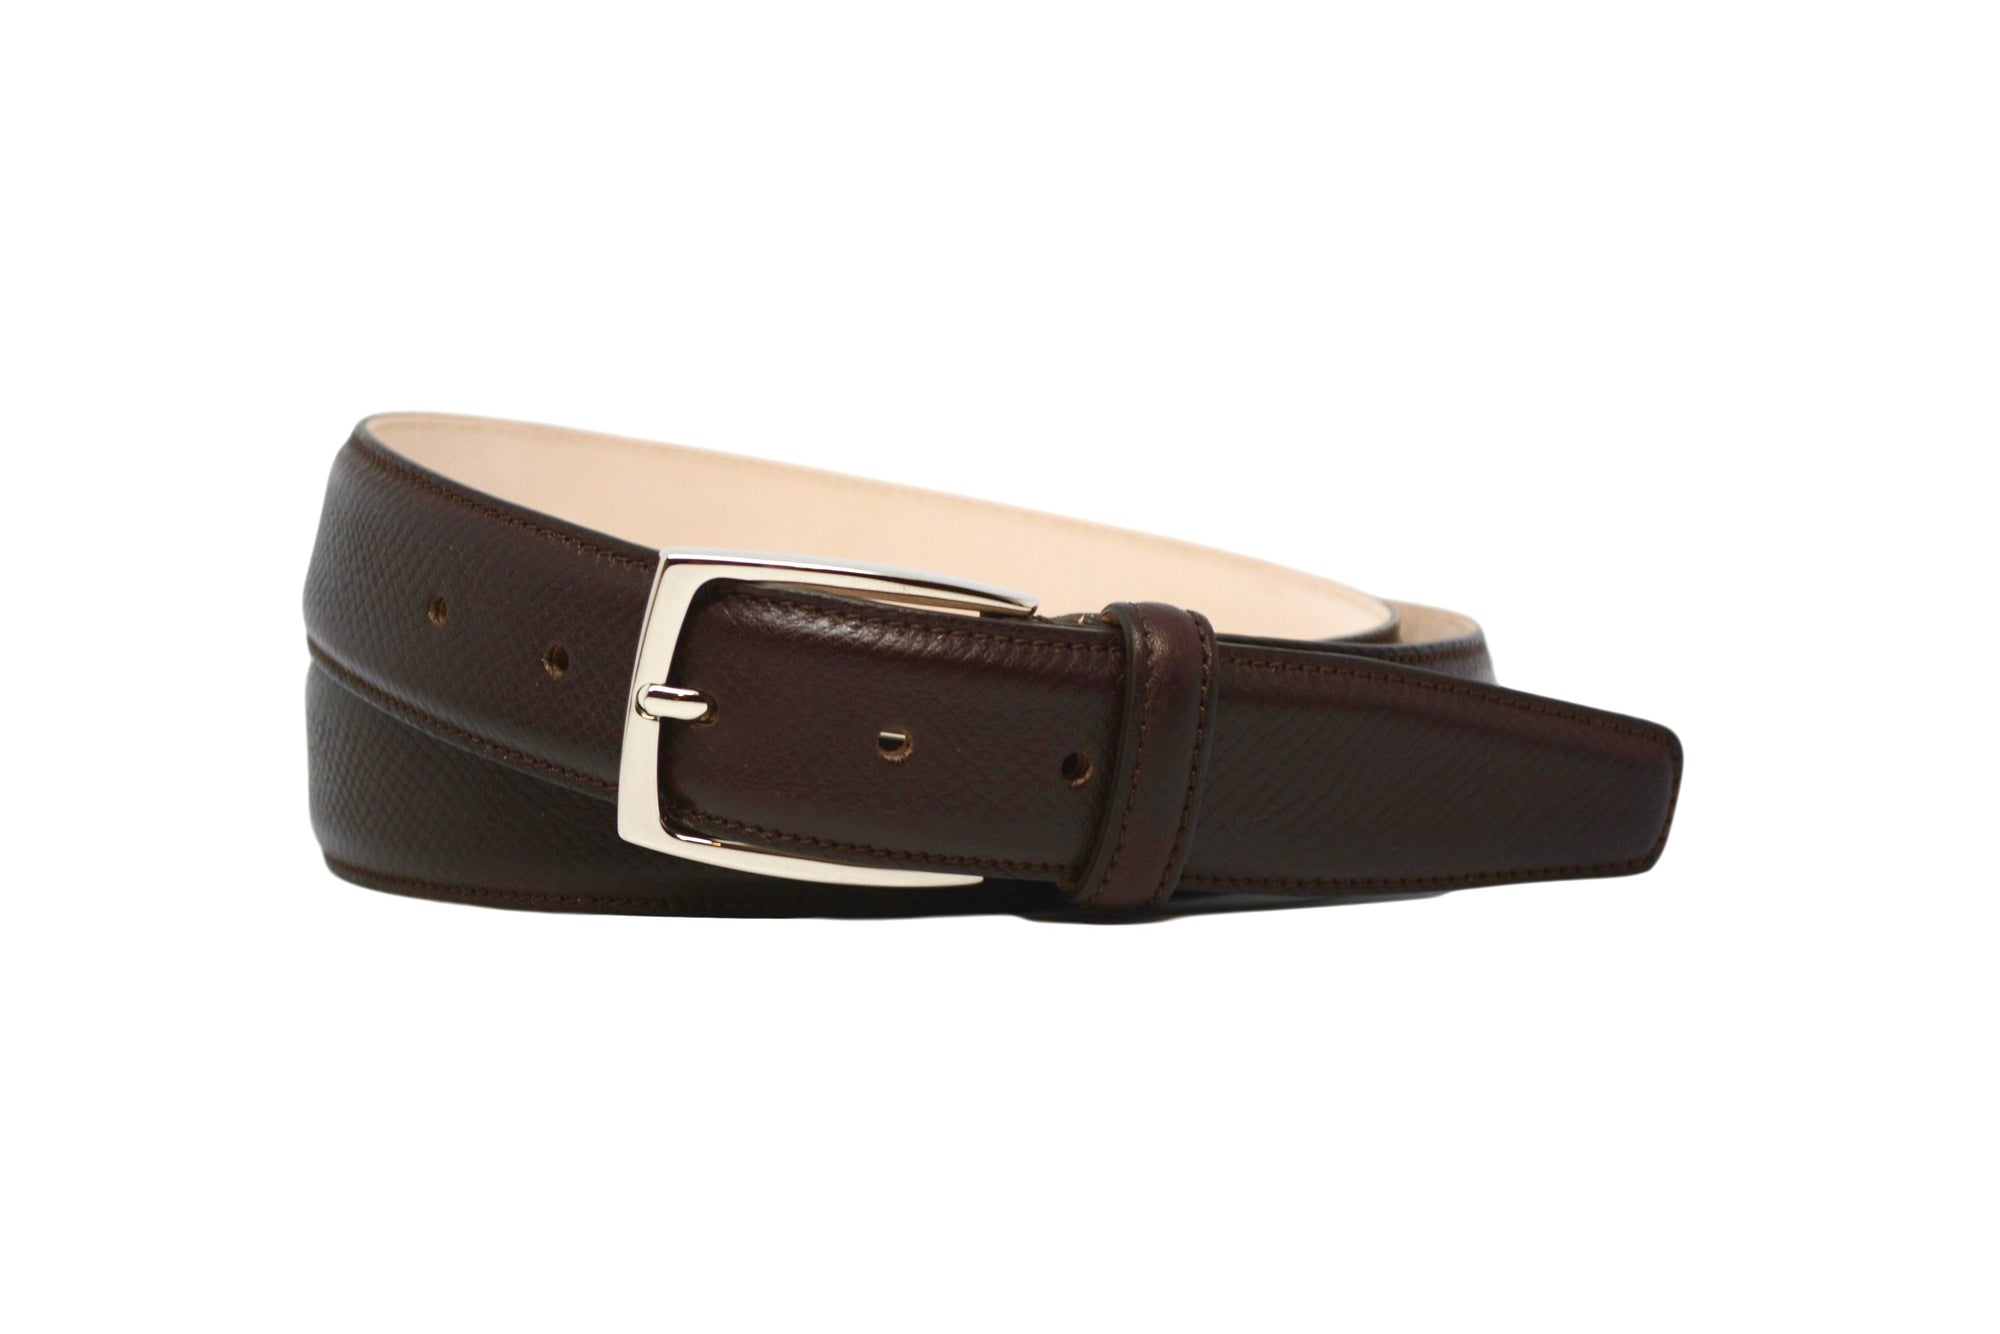 MATCHING BELT - BROWN UTAH